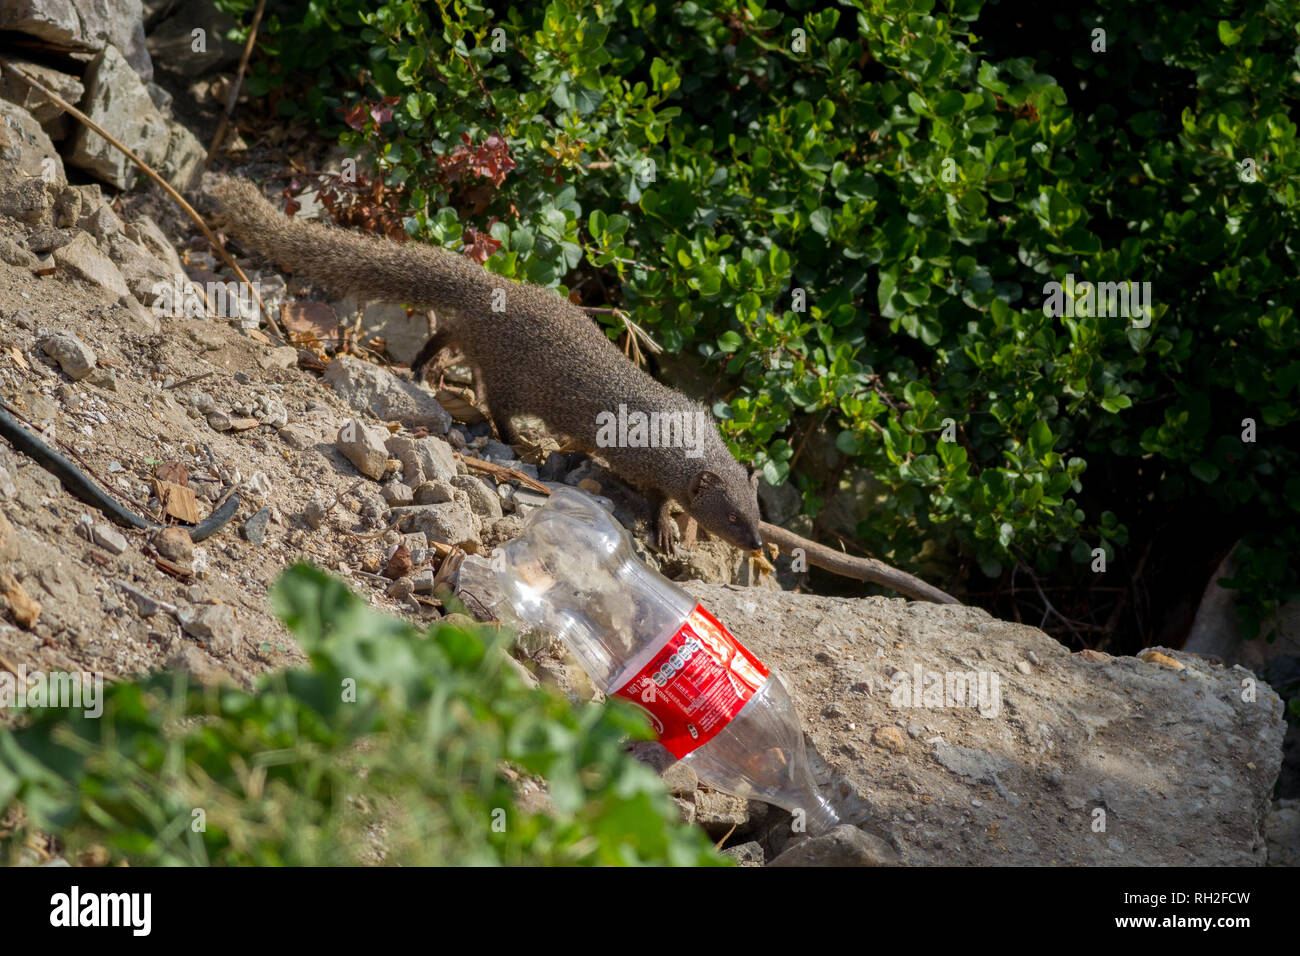 Cape Gray Mongoose (Galerella pulverulenta) in the undergrowth with discarded bottle highlighting plastic pollution, South Africa - Stock Image